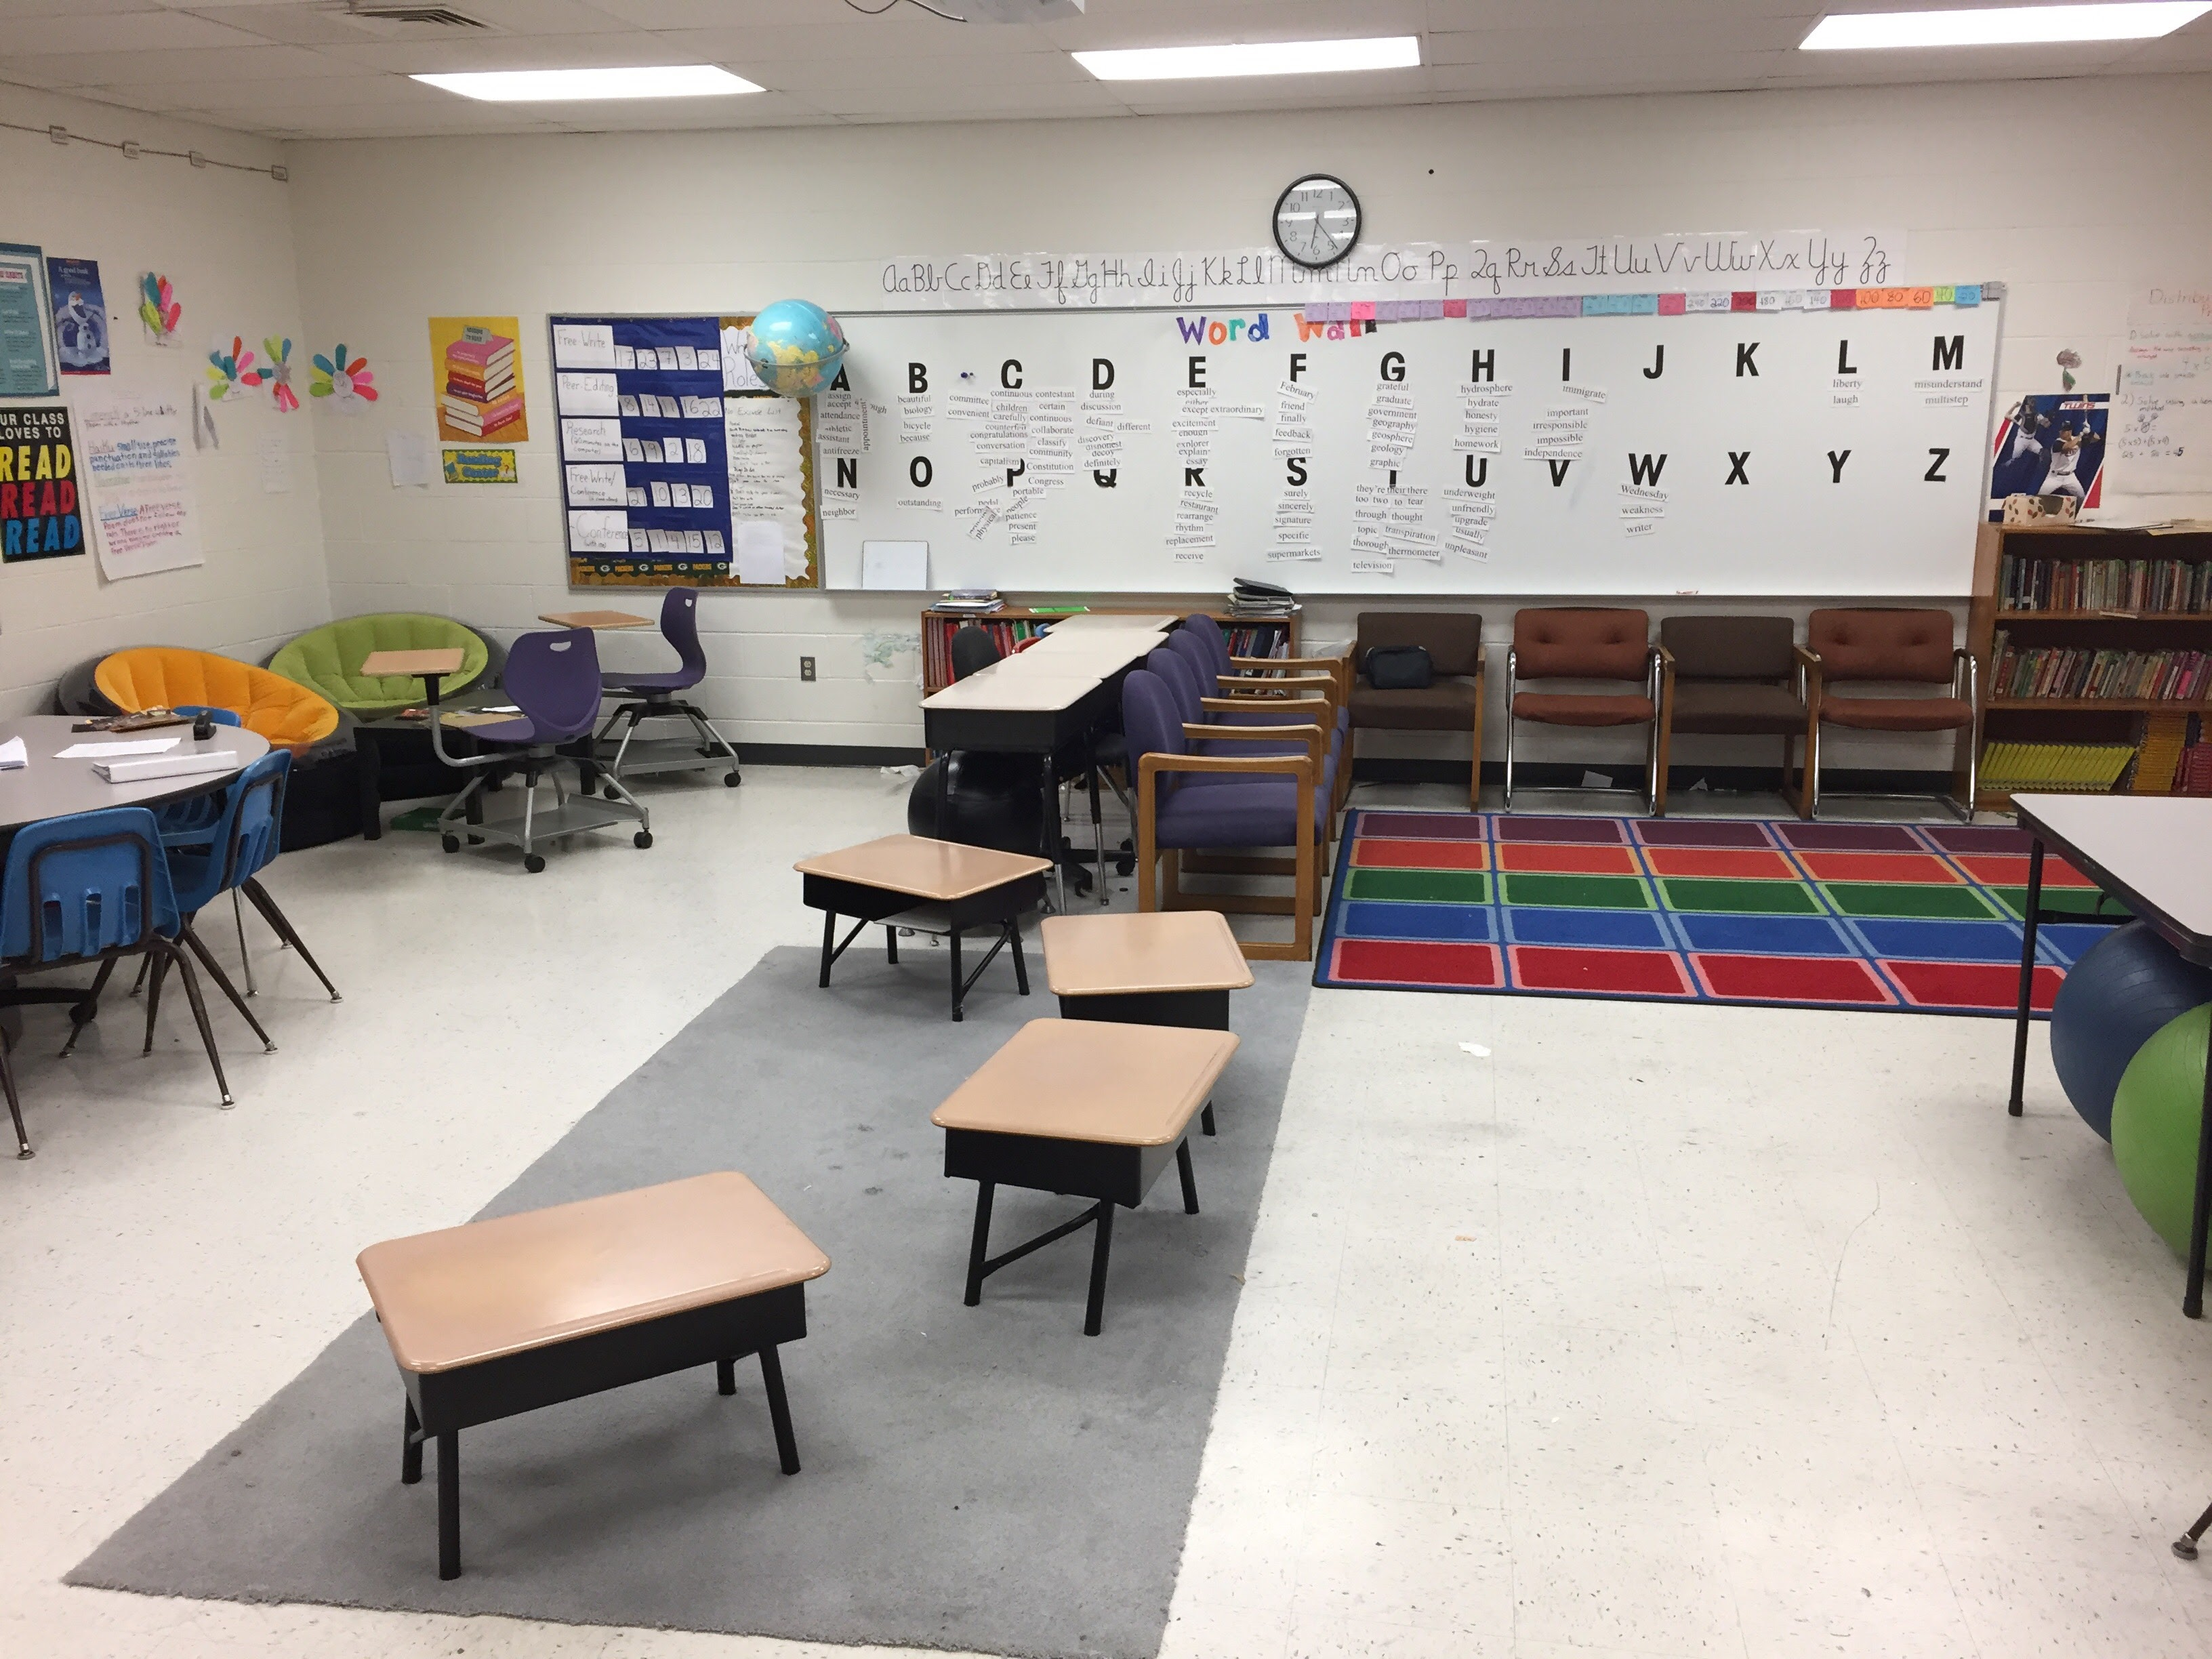 Rearranging Existing Furniture Can Go A Long Way Toward Giving Your  Classroom More Seating Choices. Photo Courtesy Of Robert Dillon.